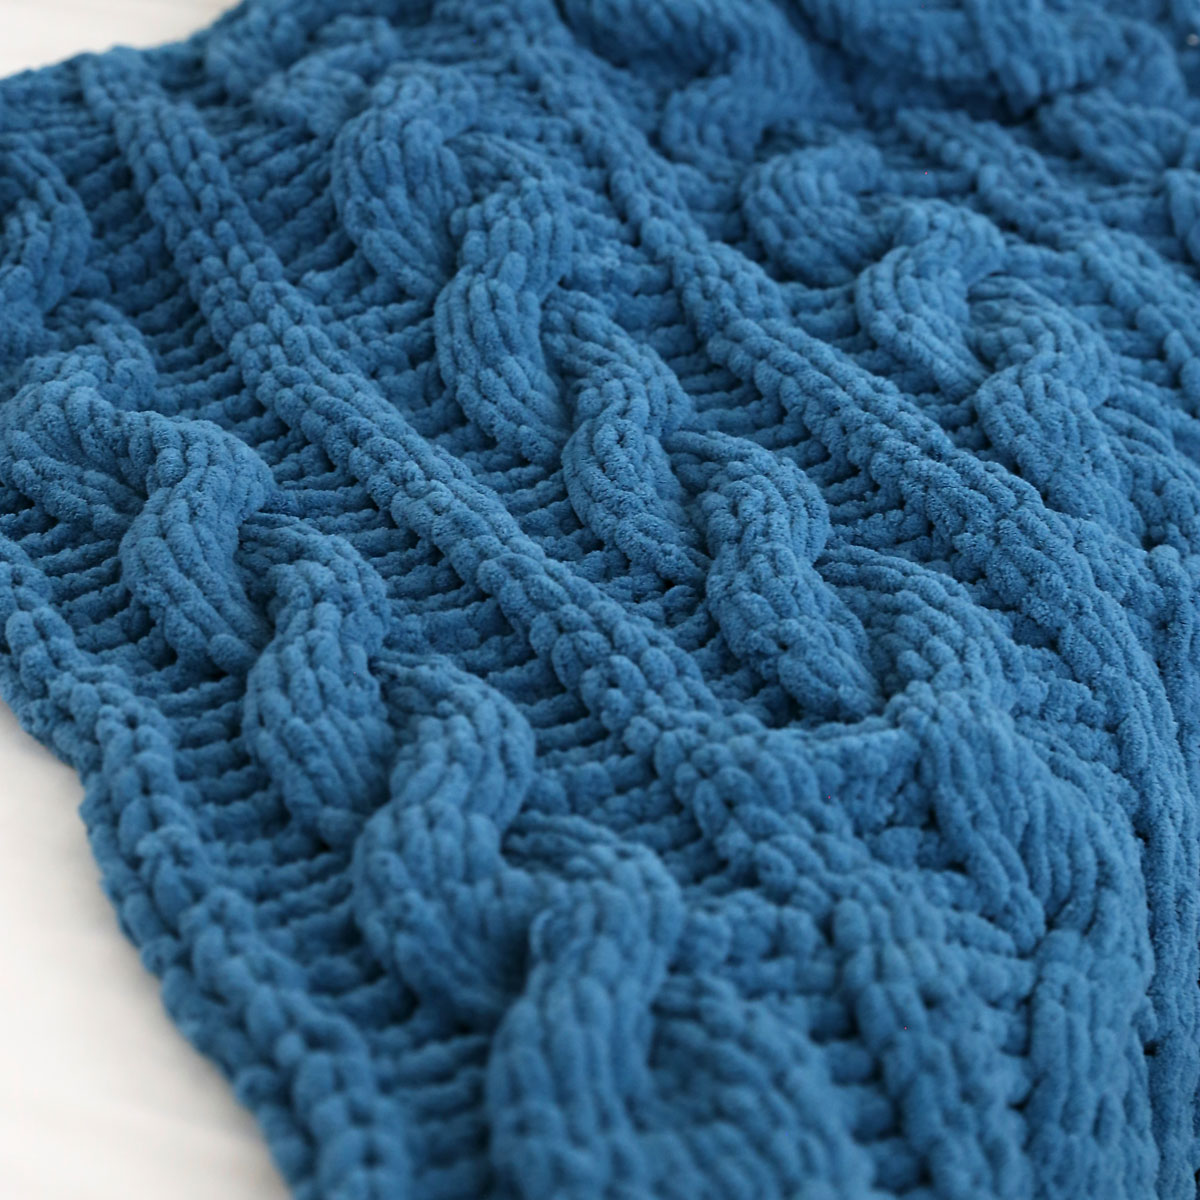 Cable knit blanket made from loop yarn